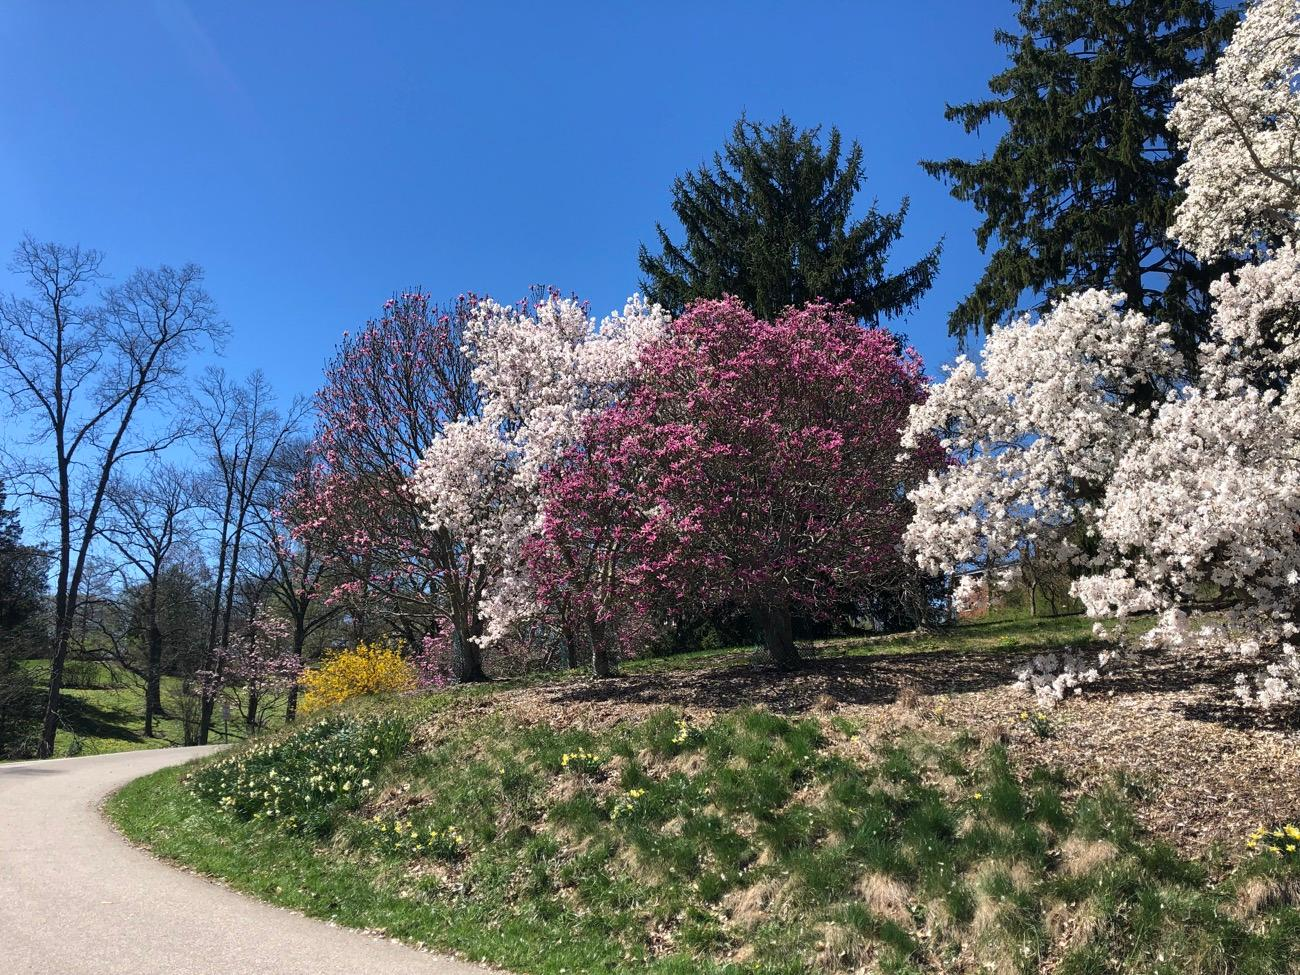 MT. AIRY: Mt. Airy features features hiking and bridling trails, an enclosed dog park, disc golf, Ohio's only wheel-chair accessible public treehouse, and a 30-acre arboretum with 5,000 plants representing 1,600 botanical species. / Image: Brian Planalp